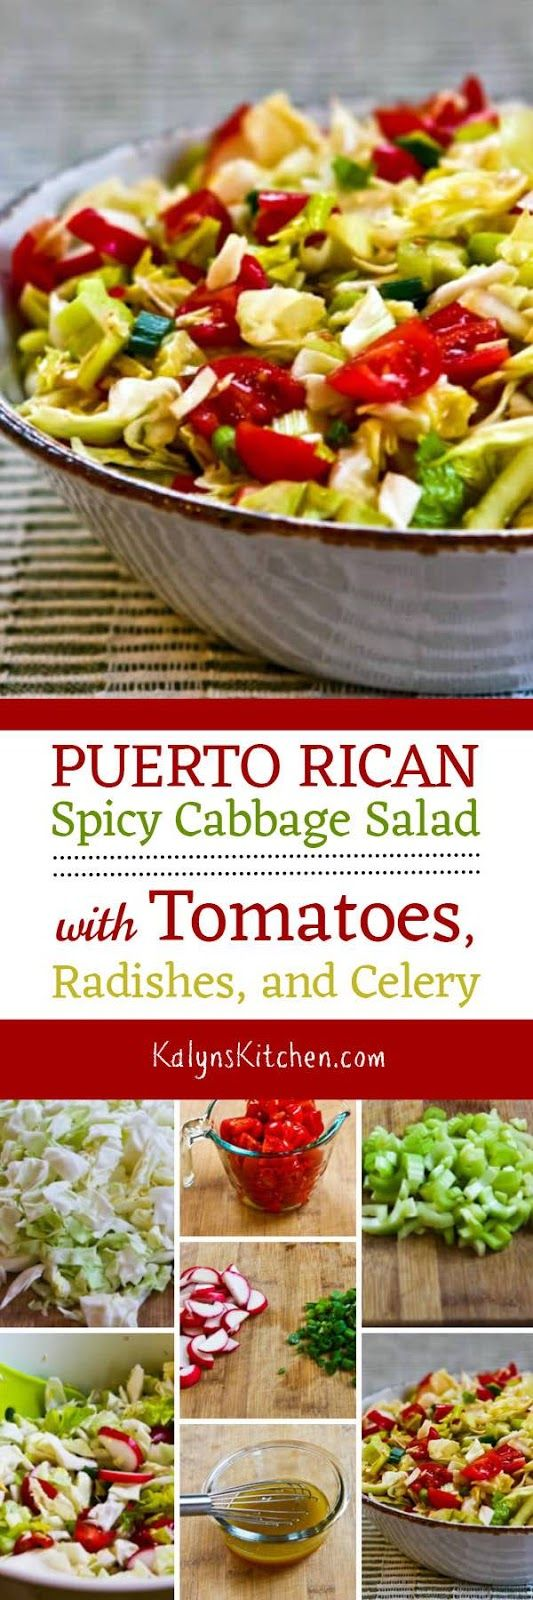 I loved this Puerto Rican Spicy Cabbage Salad with Tomatoes, Radishes, and Celery, and this interesting cabbage salad is low-carb, Keto, low-glycemic, vegan, dairy-free, gluten-free, and South Beach Diet friendly. [from KalynsKitchen.com]